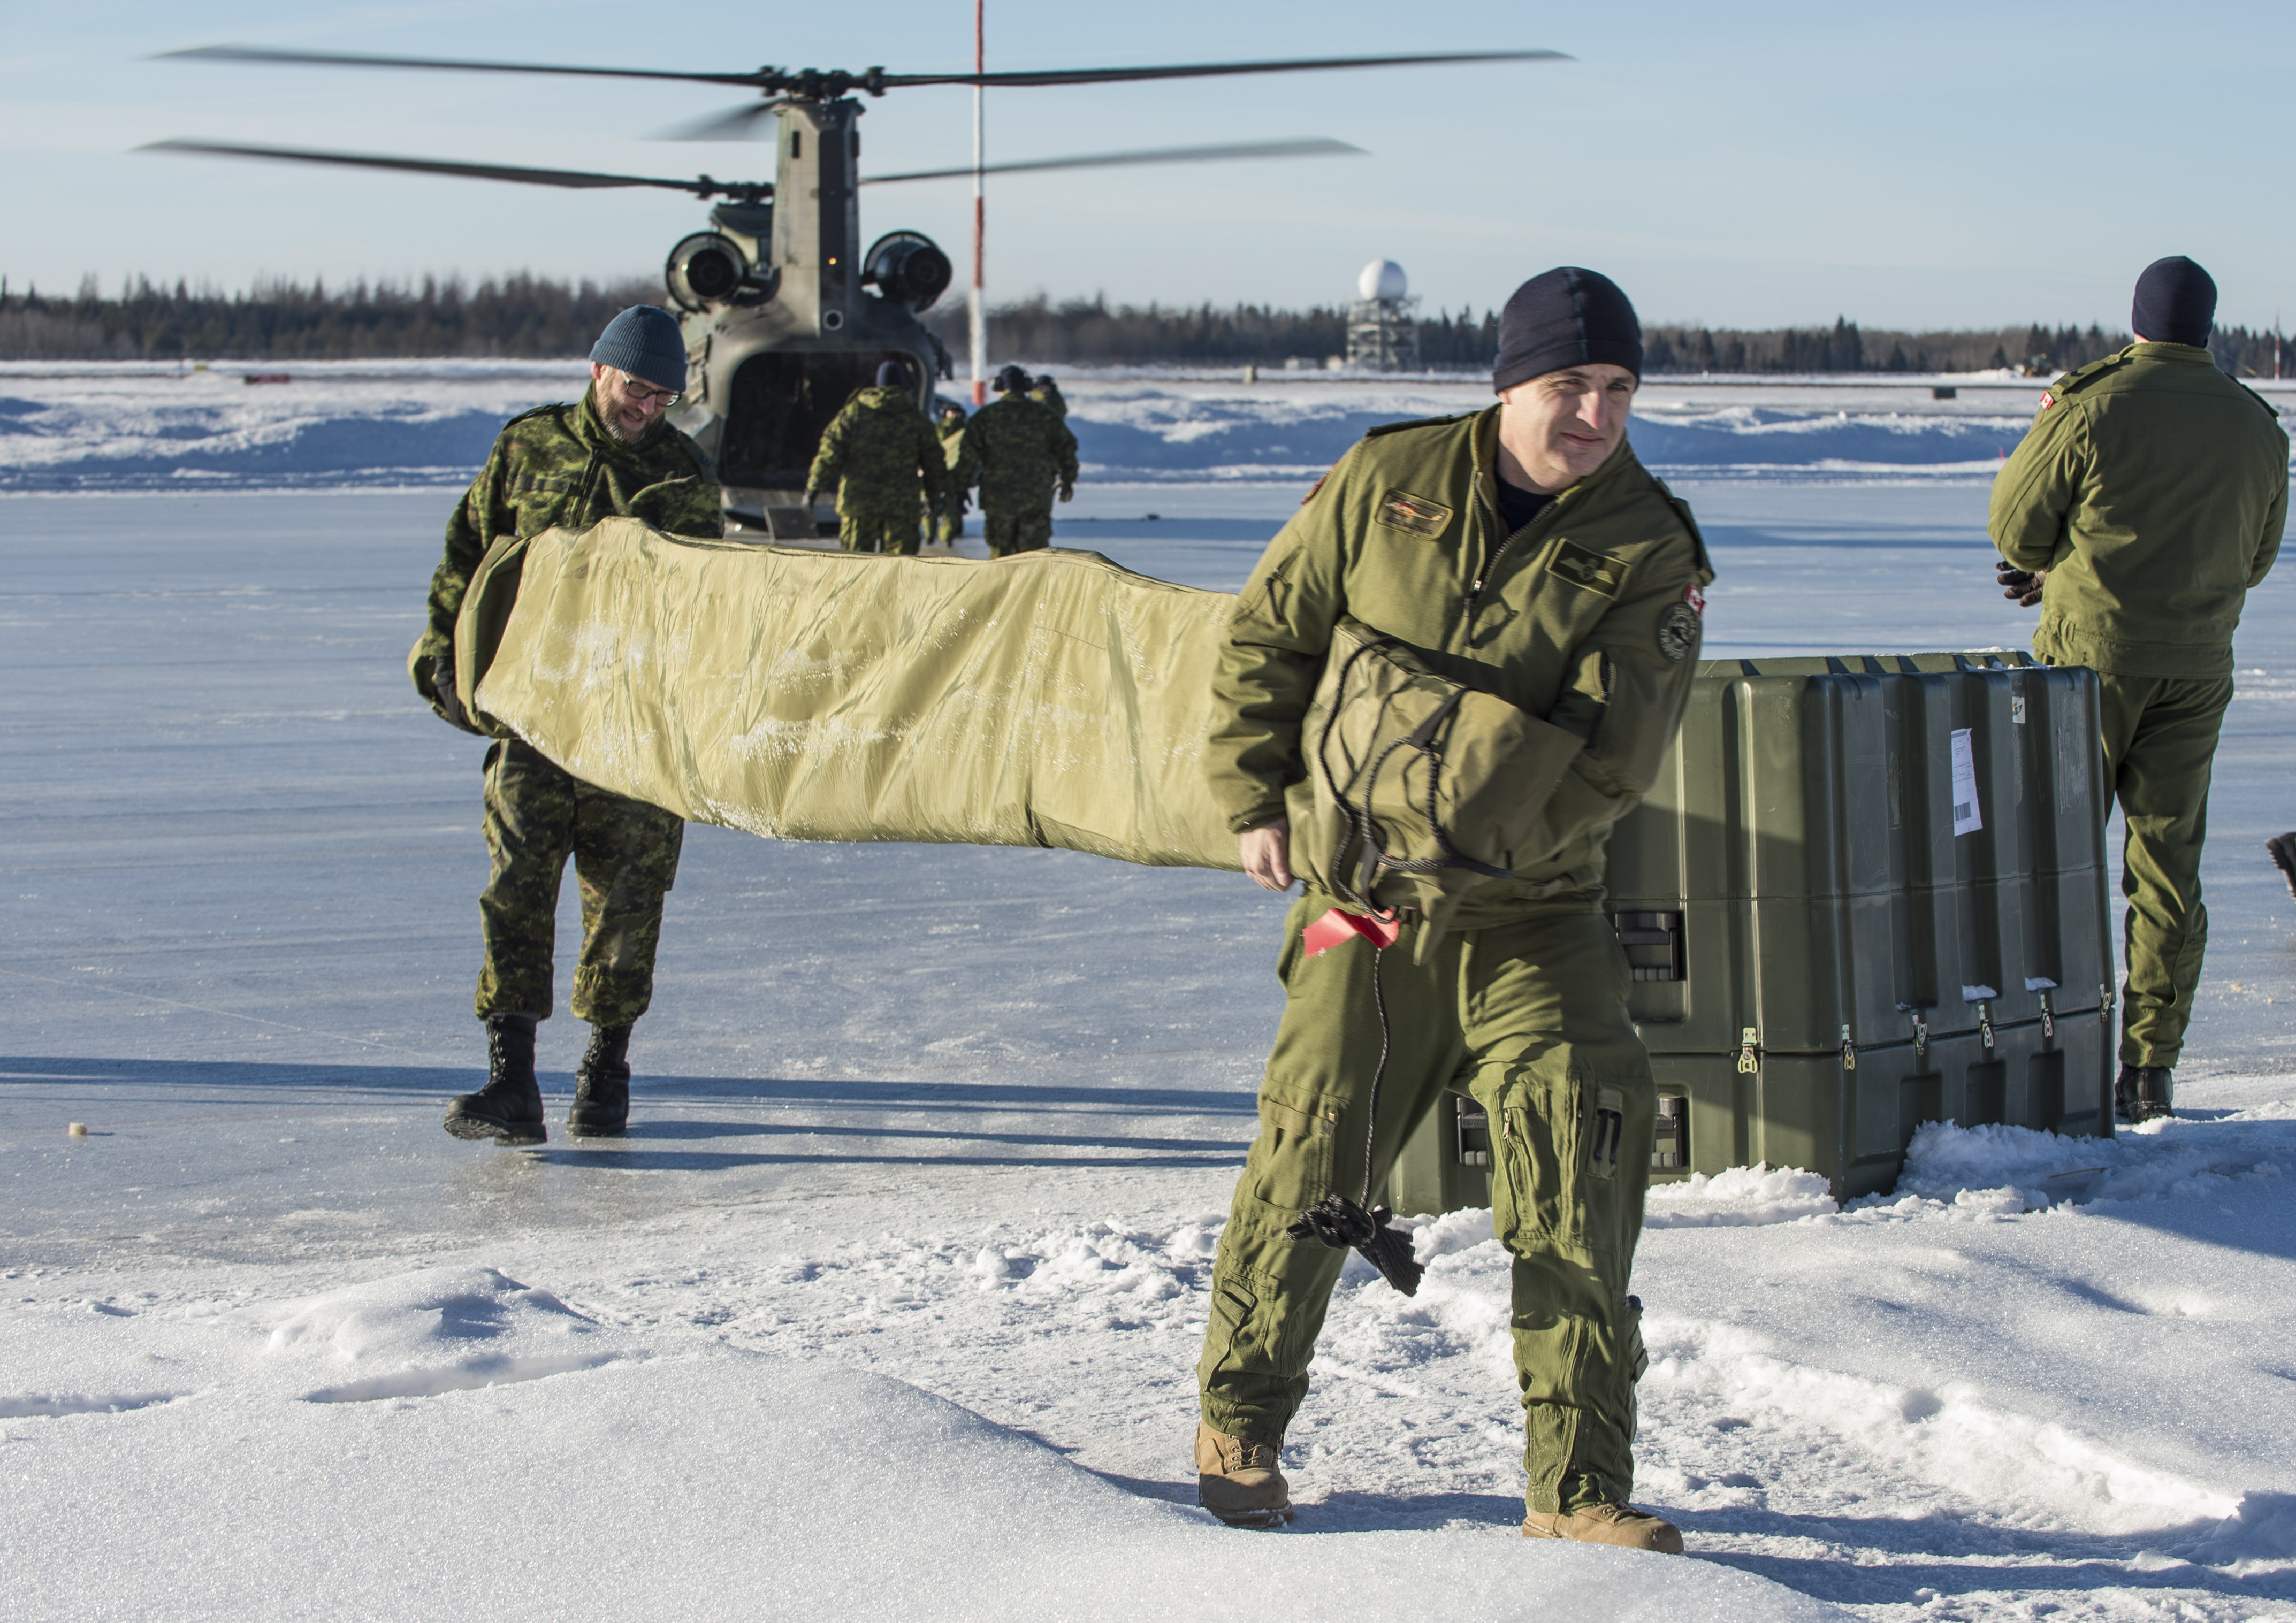 Personnel from 417 Combat Support Squadron unload parts of a damaged CH-146 Griffon from a CH-147F Chinook helicopter on January 15, 2019, at 4 Wing Cold Lake. Later in the day, the Chinook successfully airlifted the Griffon from a remote area of the Cold Lake Air Weapons Range back to the wing. PHOTO: Able Seaman Mathieu Potvin, AE02-2019-0011-004